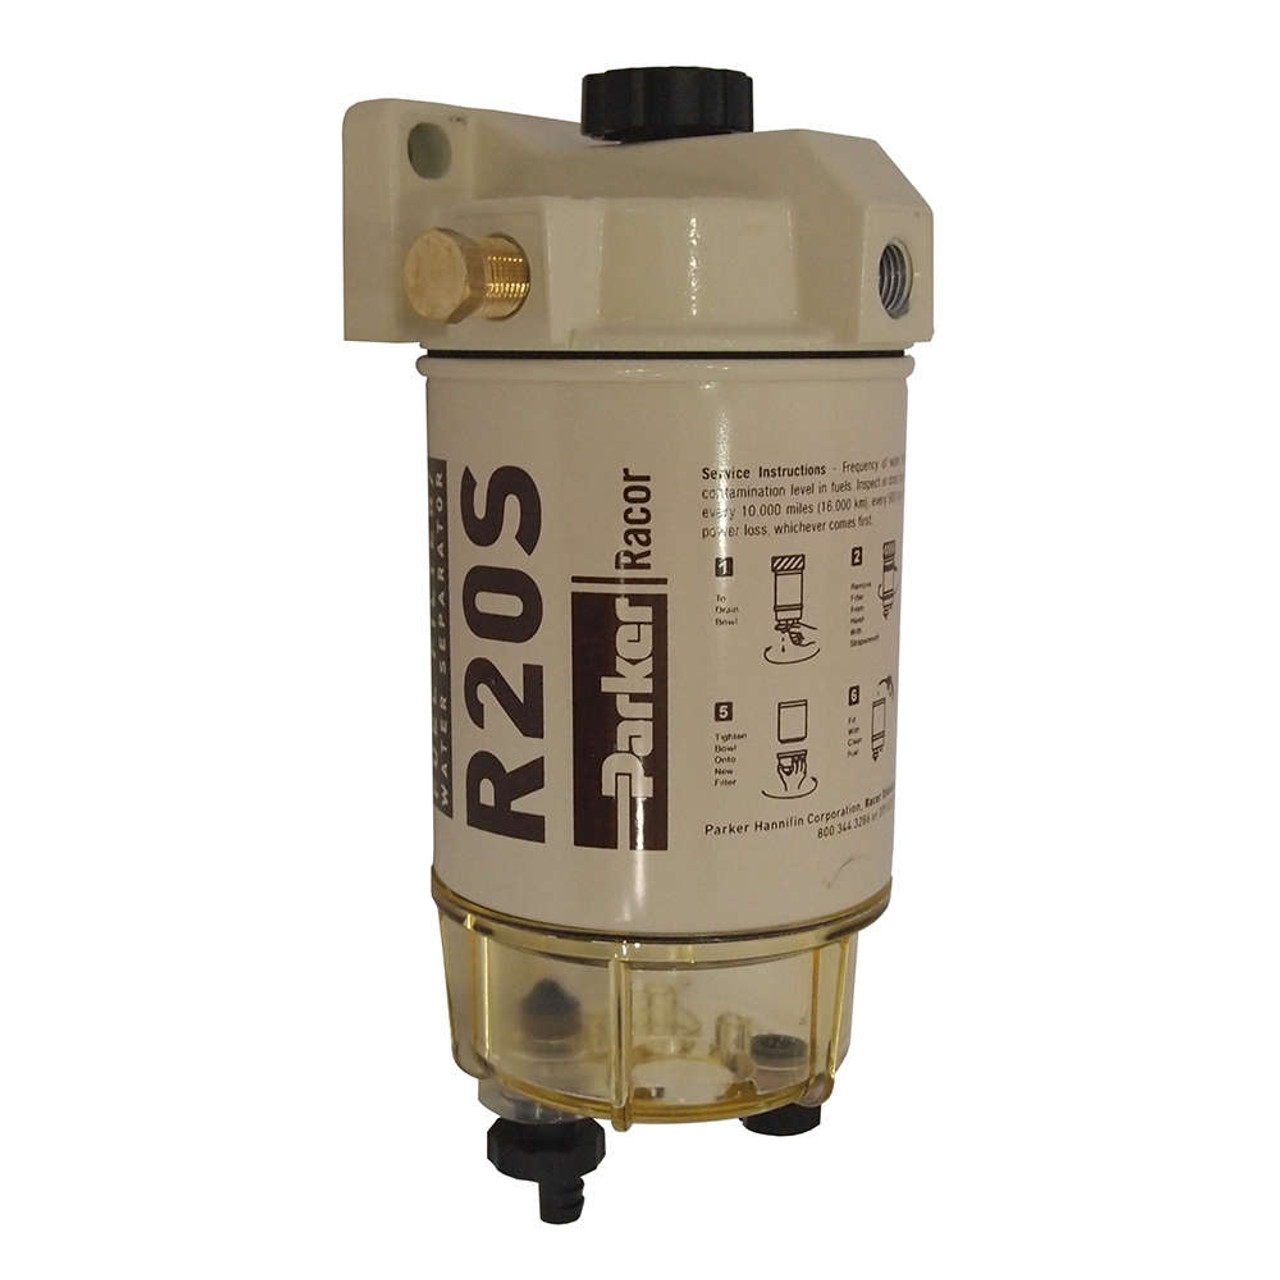 racor 200 series 30 gph low flow diesel fuel filter water separator 230 filter assembly [ 1280 x 1280 Pixel ]